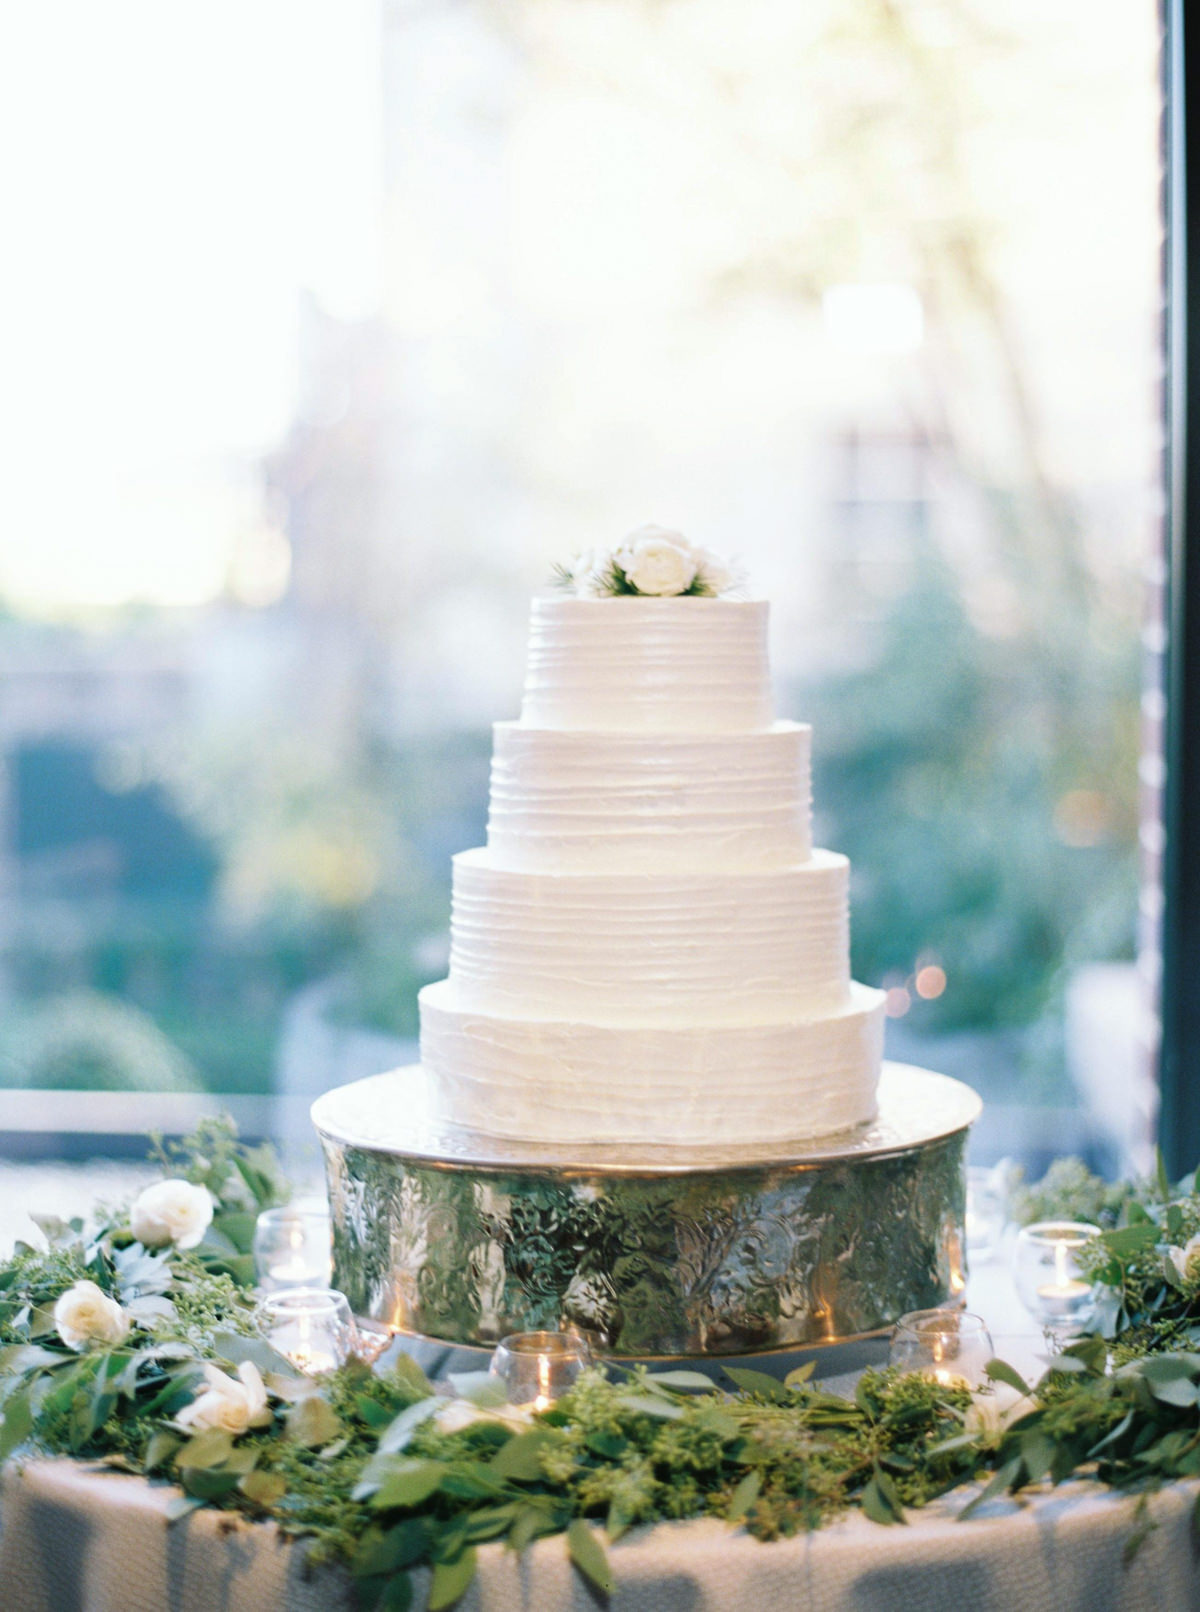 white wedding cake inspiration photo by Matoli Keely Photography